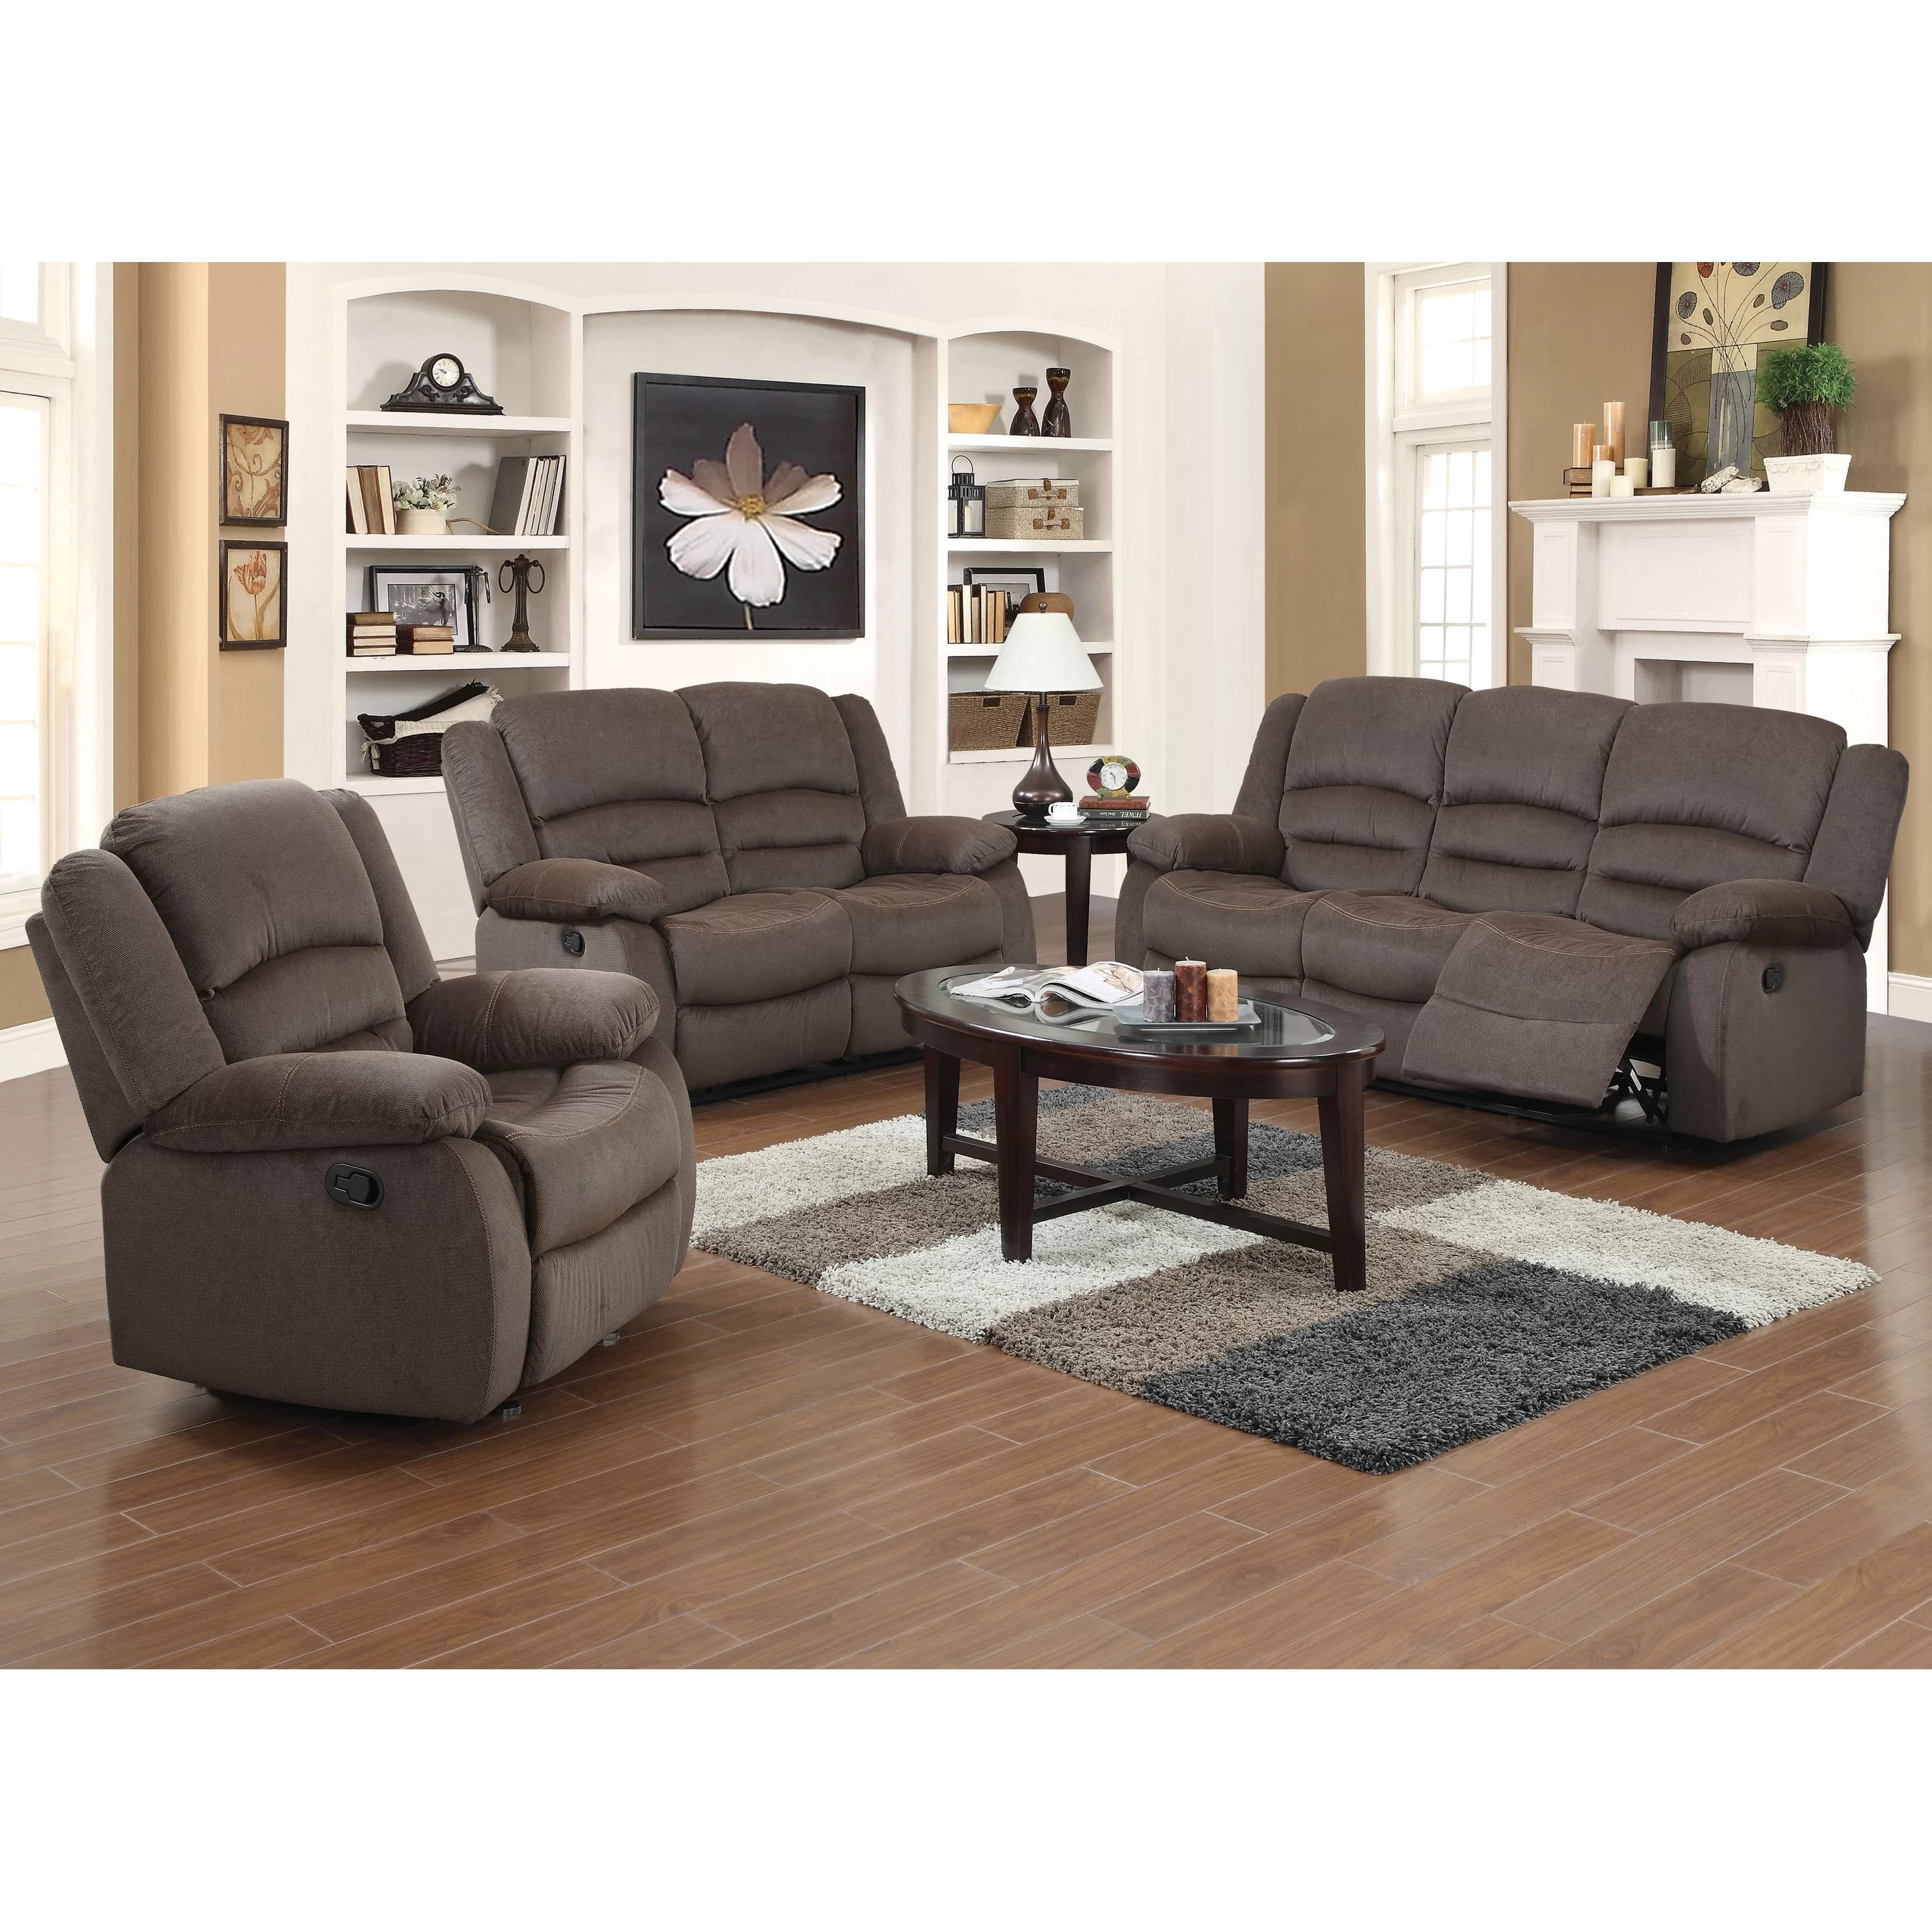 3 piece sofa set for sale coasters bed container recliner and reviews wayfair